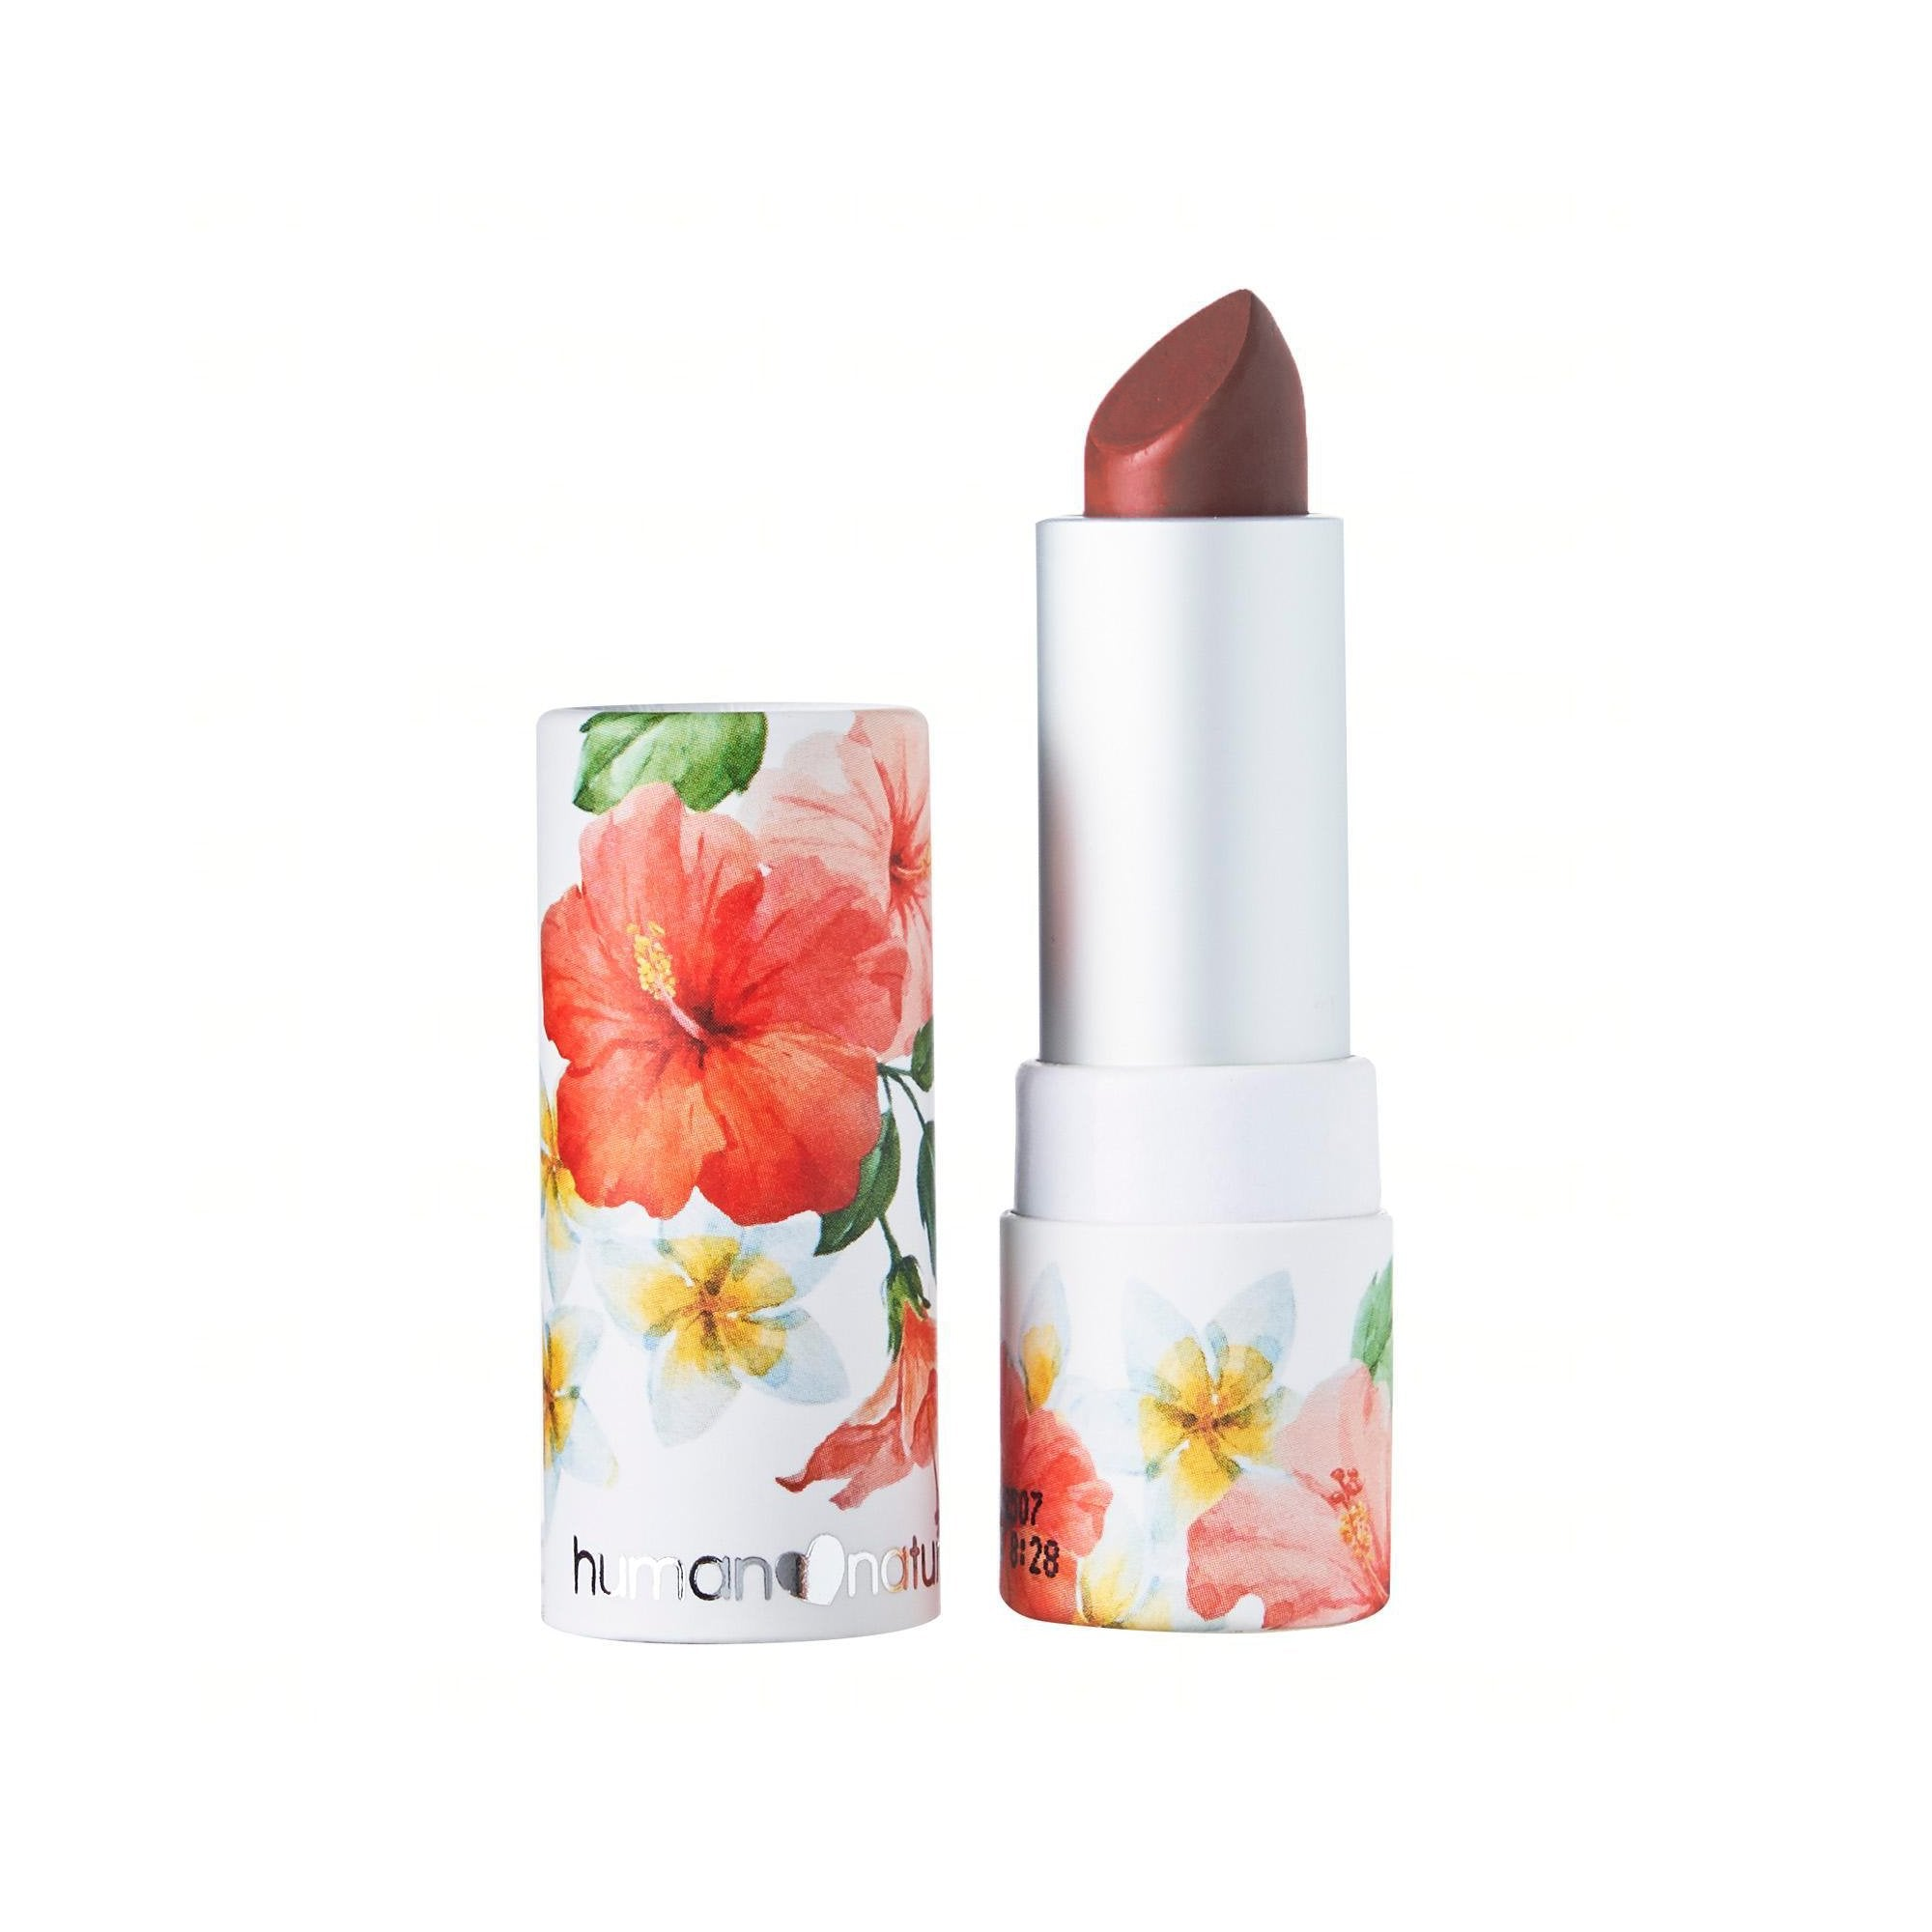 Made To Bloom Lipstick 4g